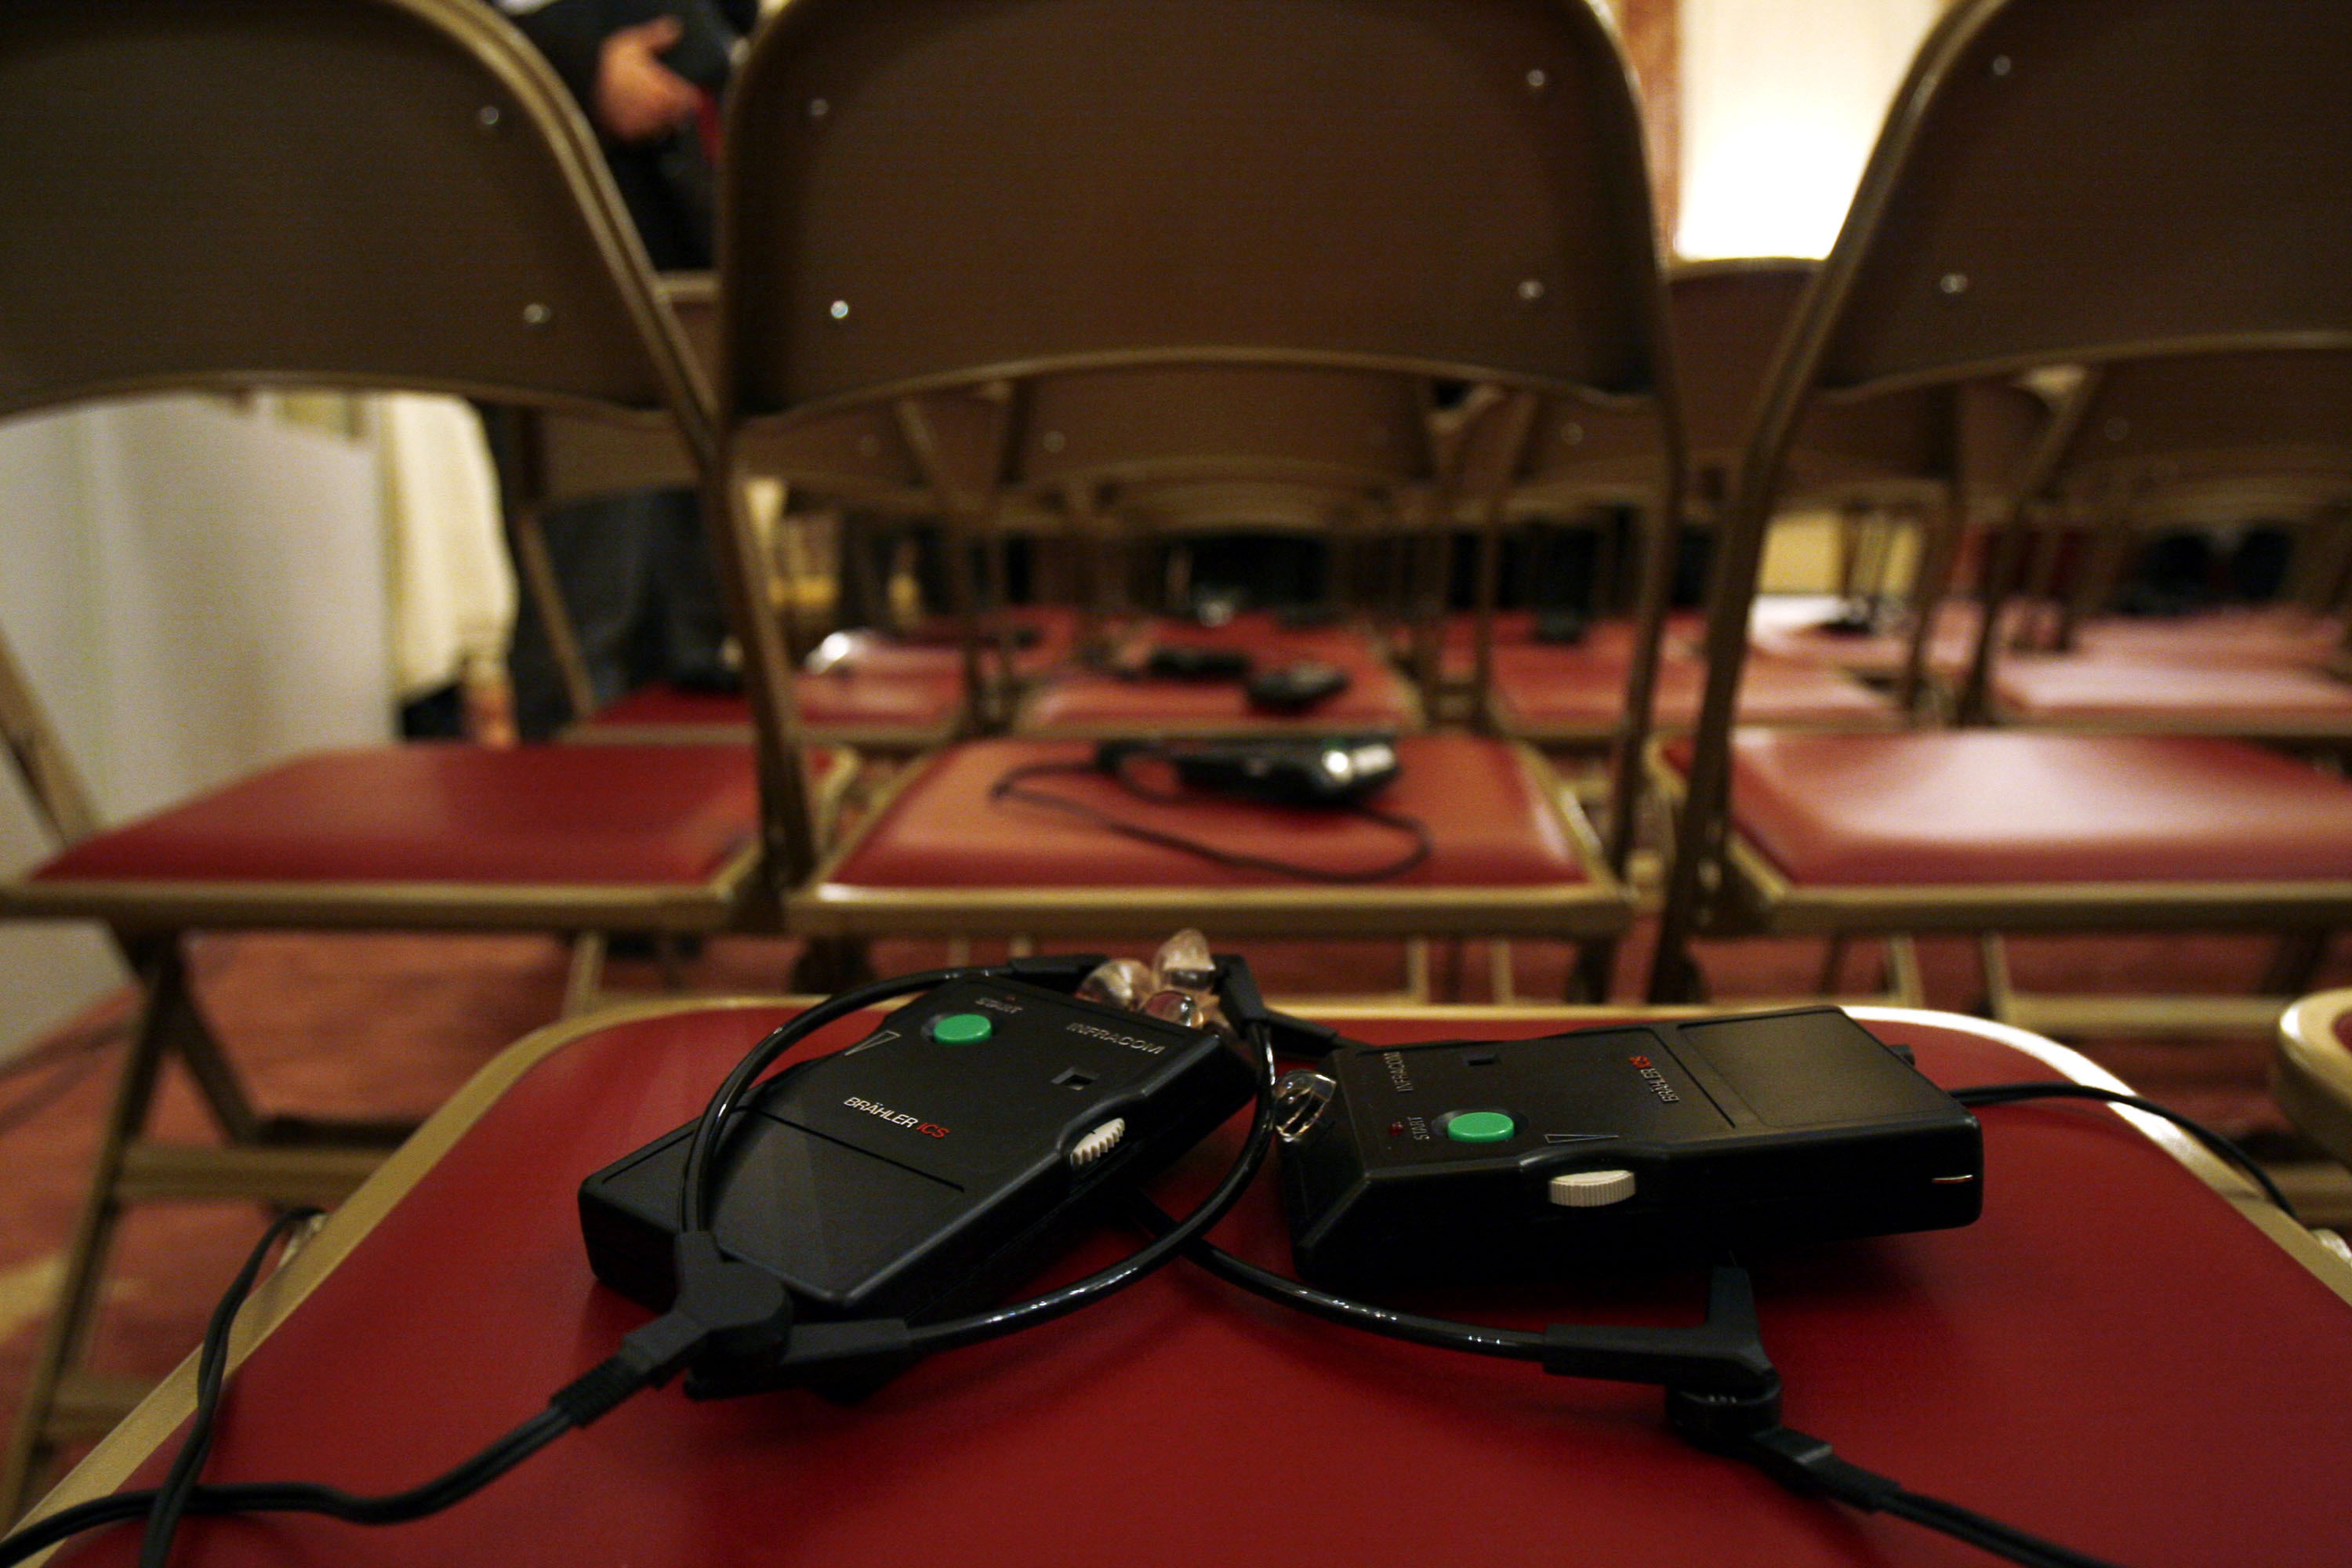 Headphones for translation purposes left by audience members sit on chairs after the conclusion of a press conference.